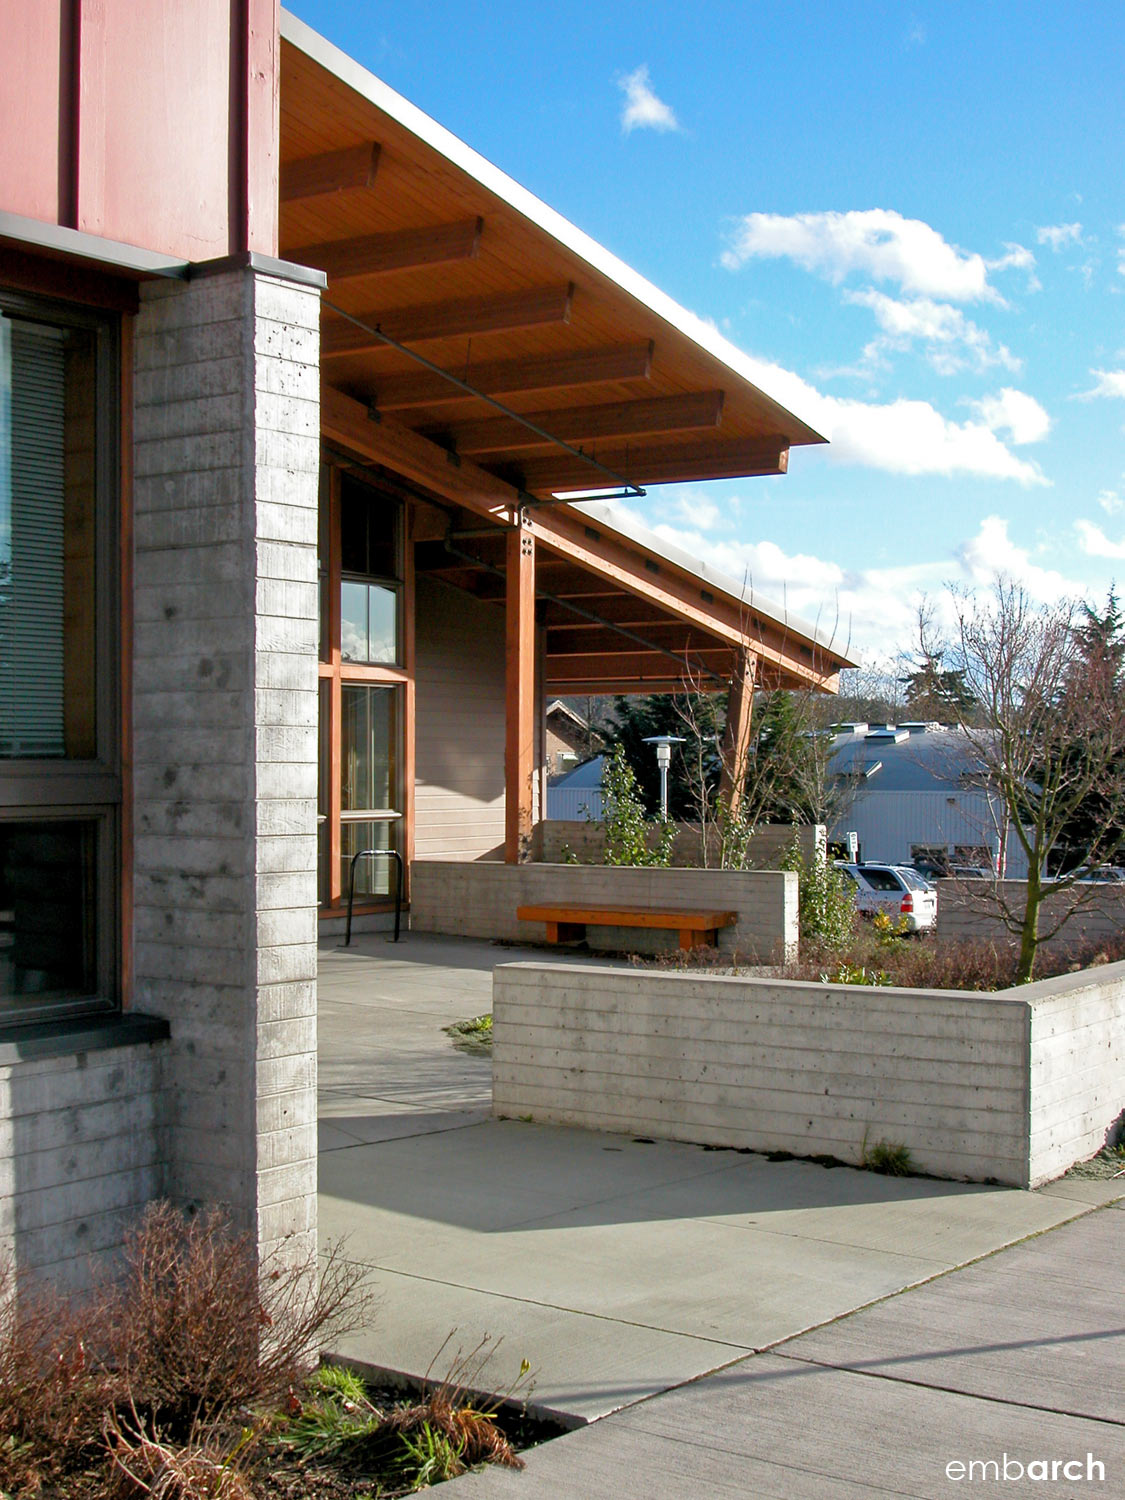 Bainbridge Island City Hall